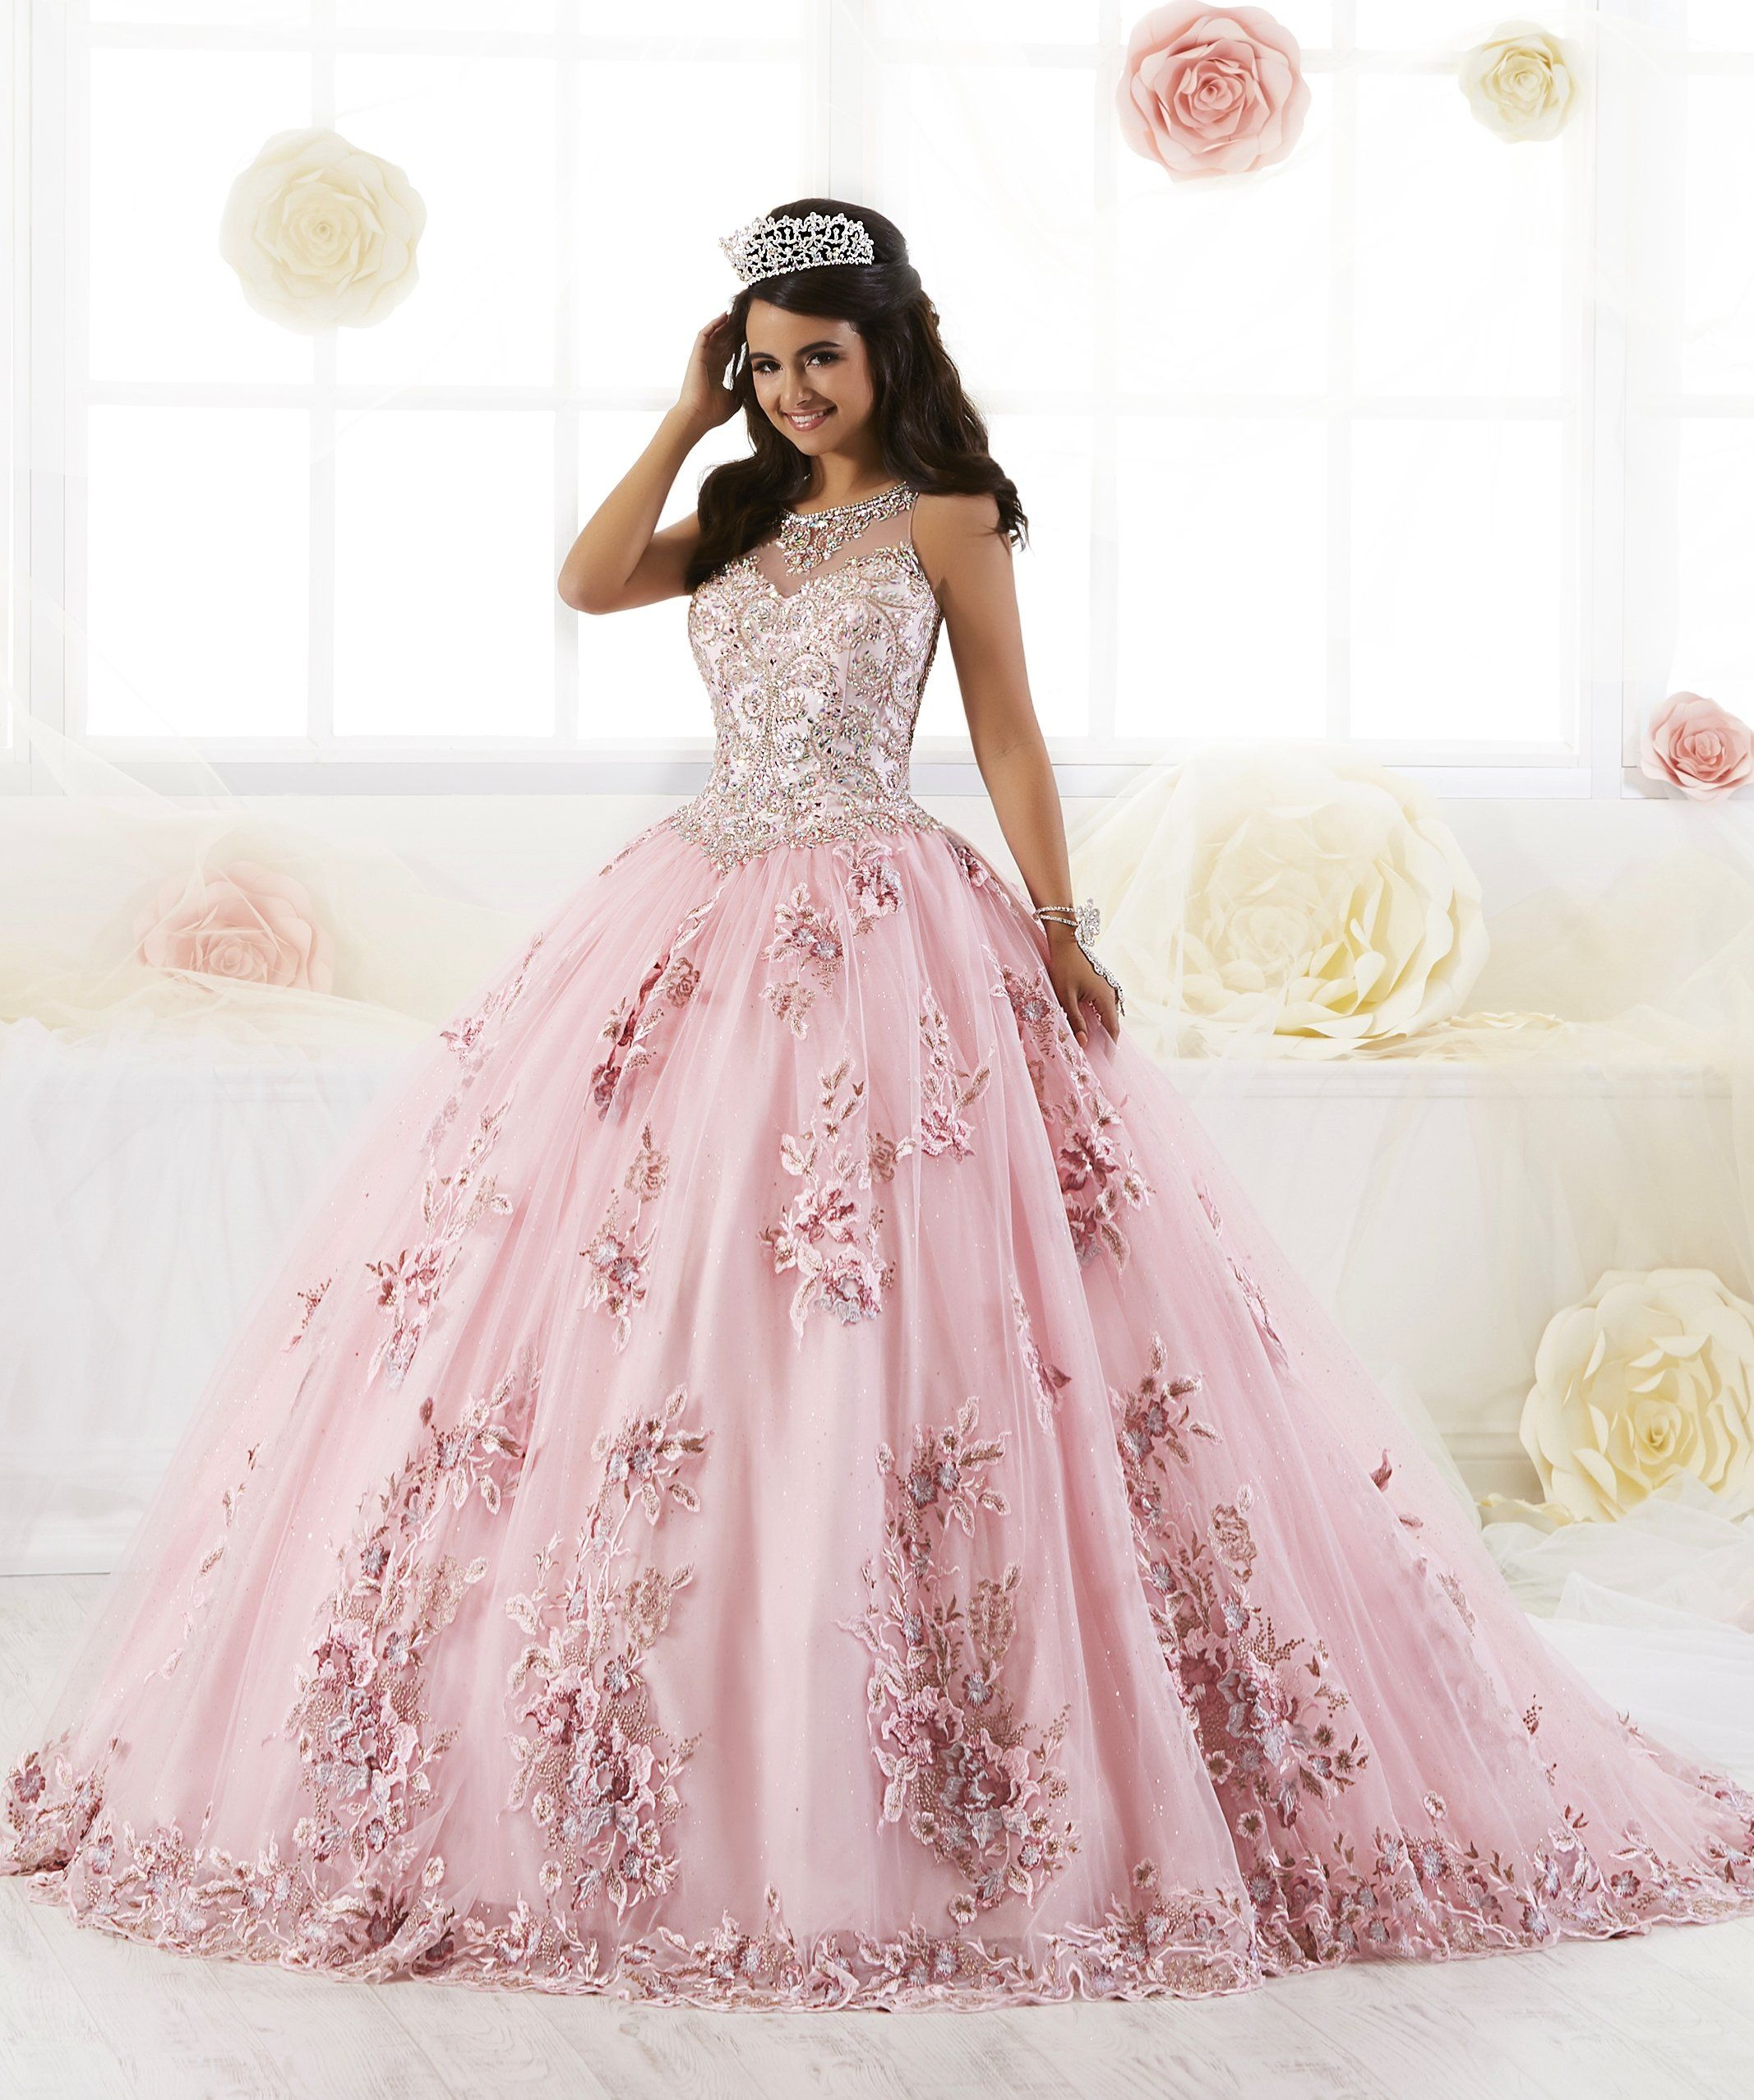 1a879dcd0d8 Floral Appliqued Quinceanera Dress by House of Wu 26884 – ABC Fashion